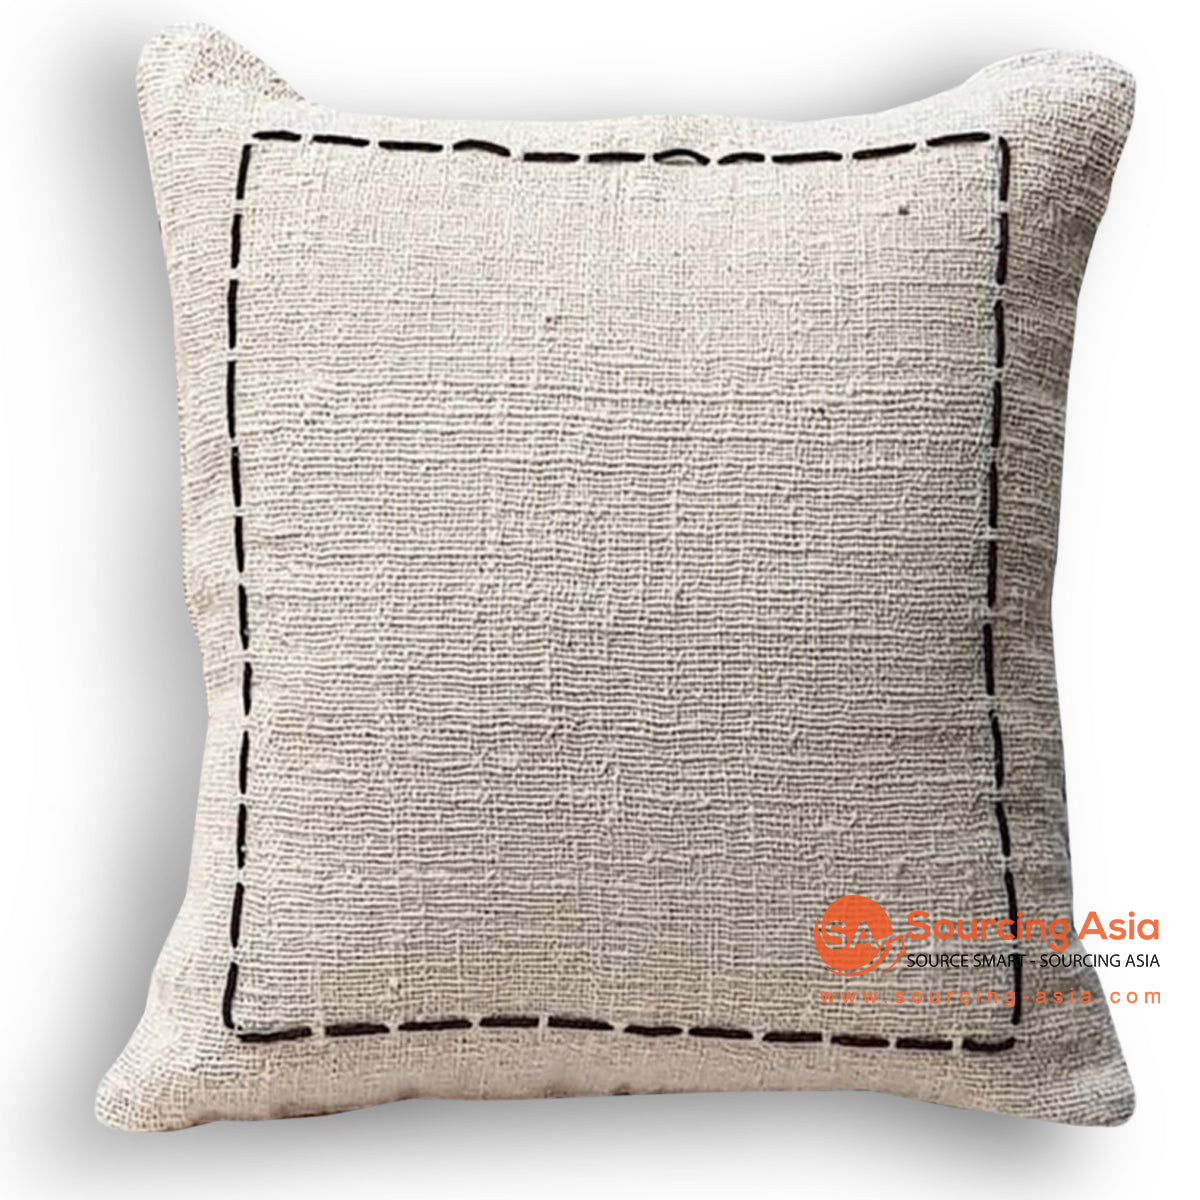 HIP006 HAND STITCHED COVER PILLOW 50 X 50 CM